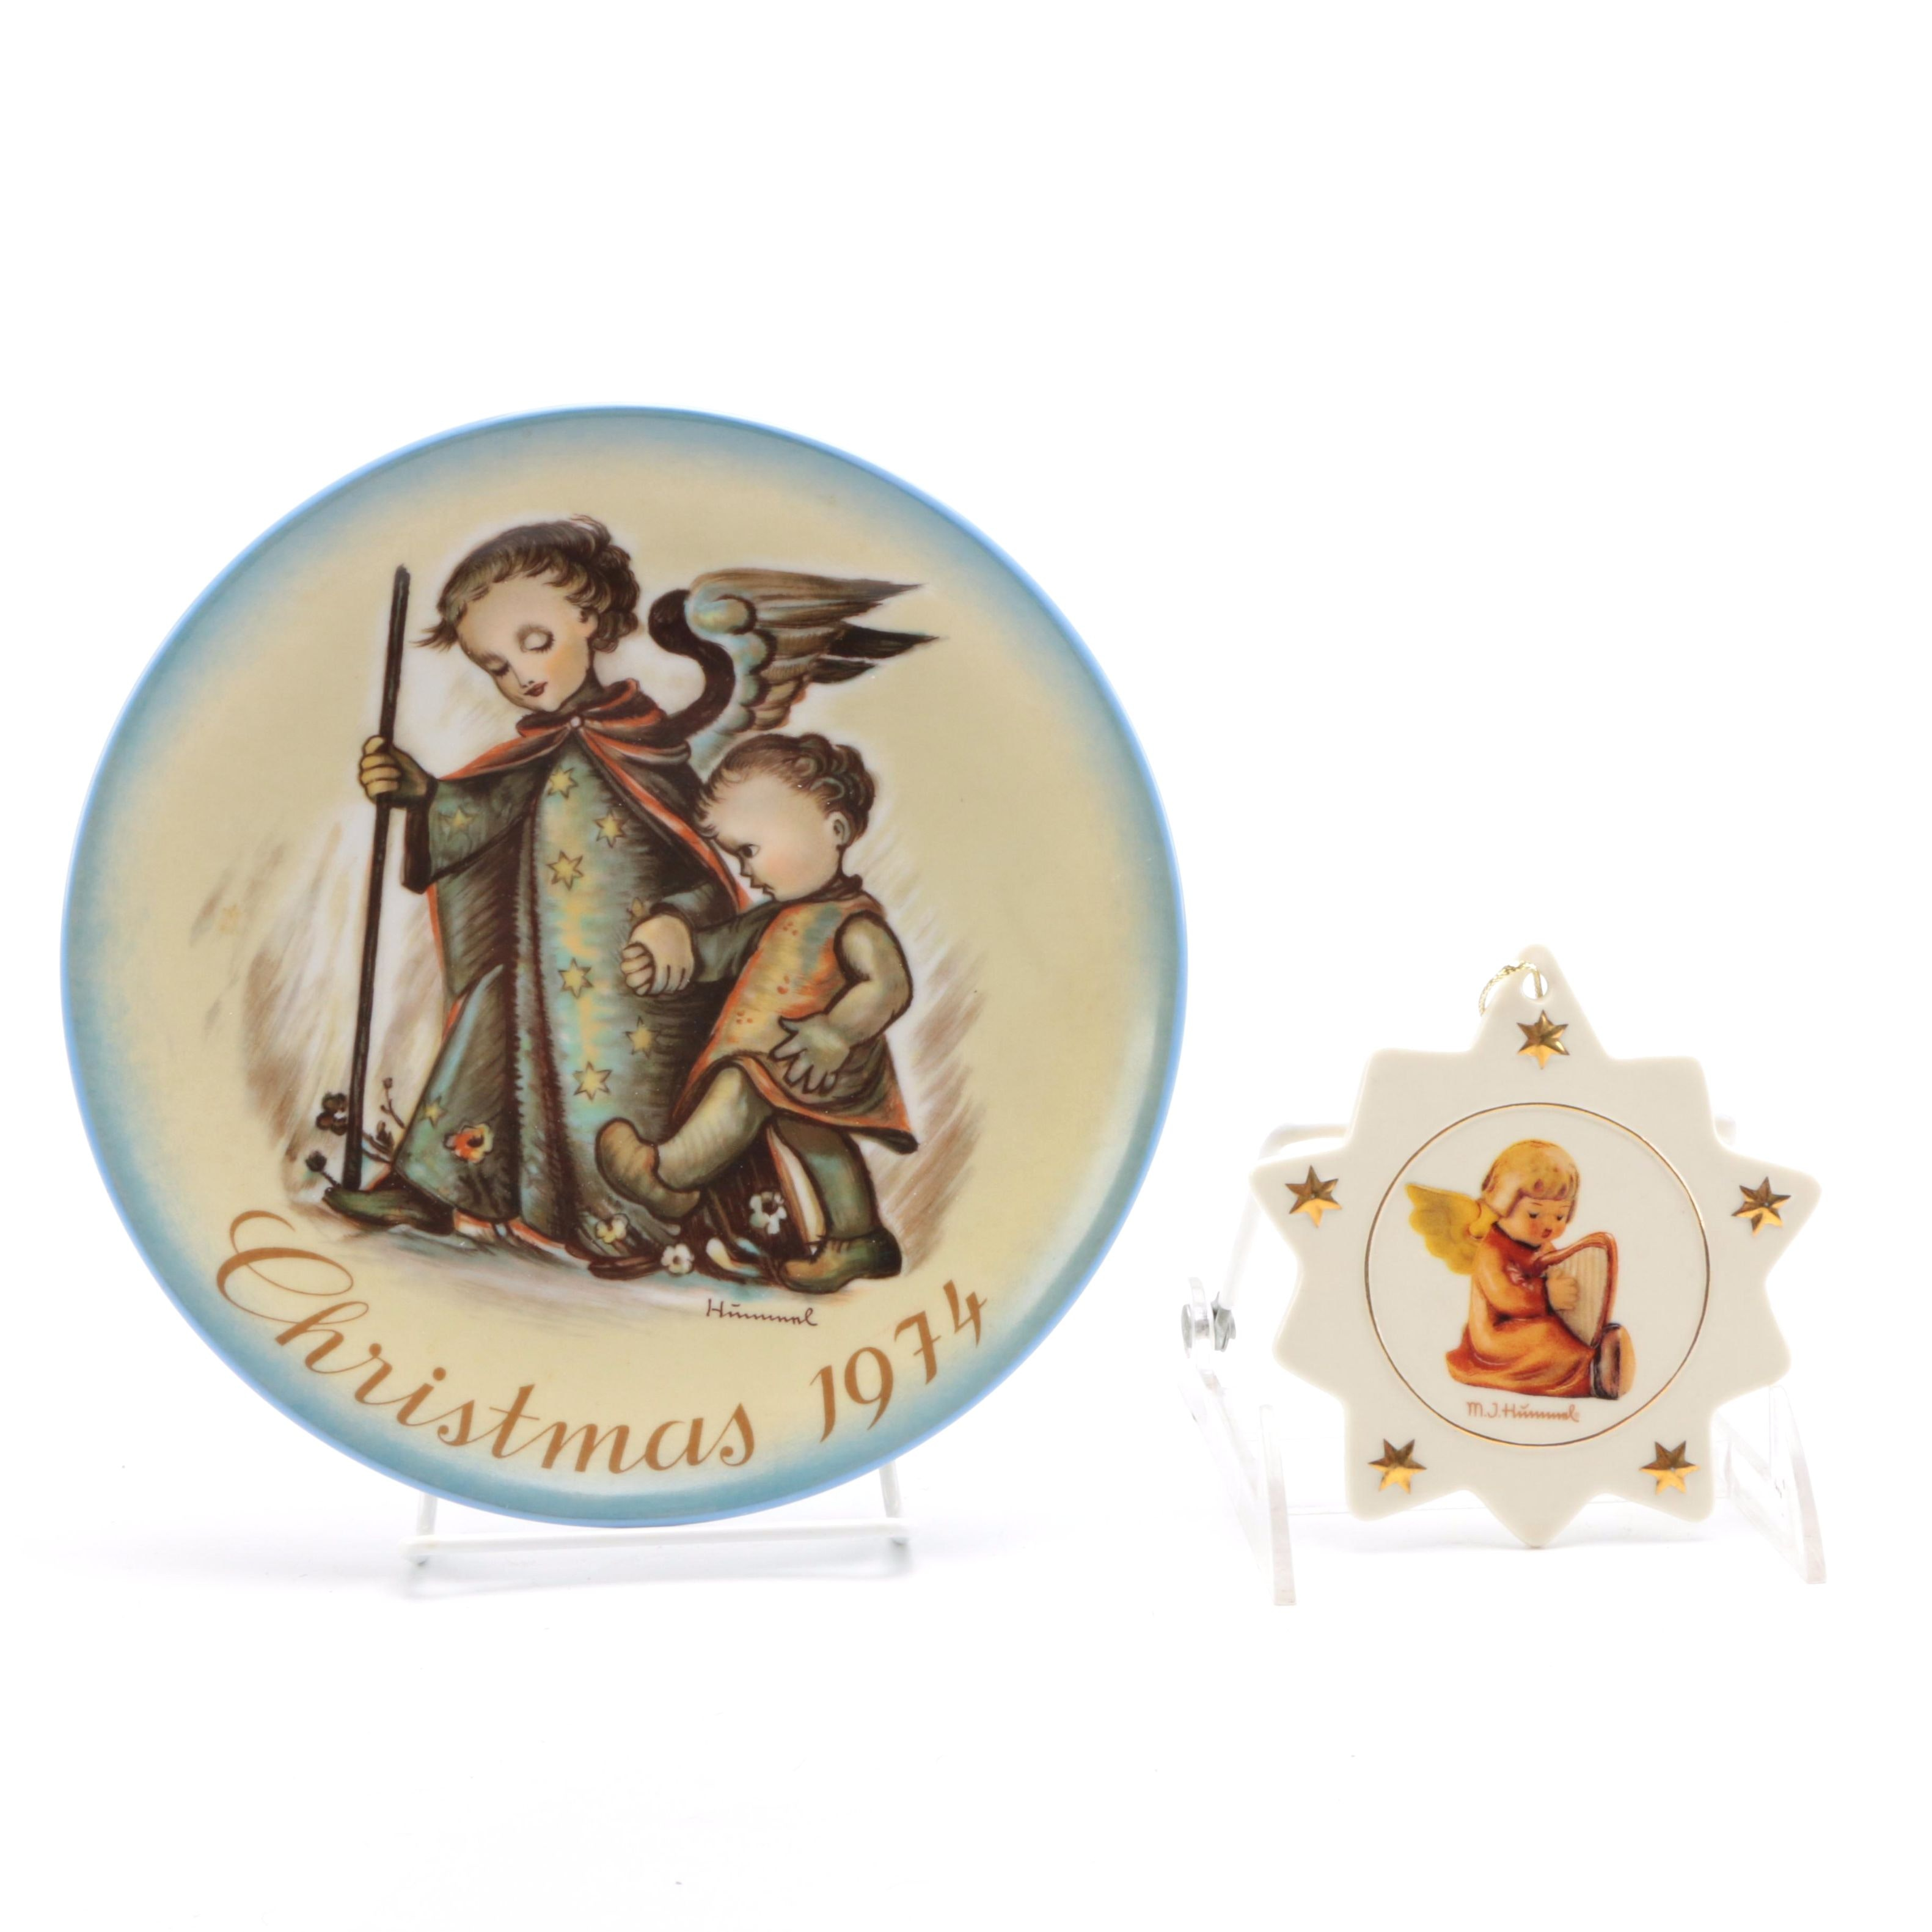 Limited Edition Hummel Plate and Ornament